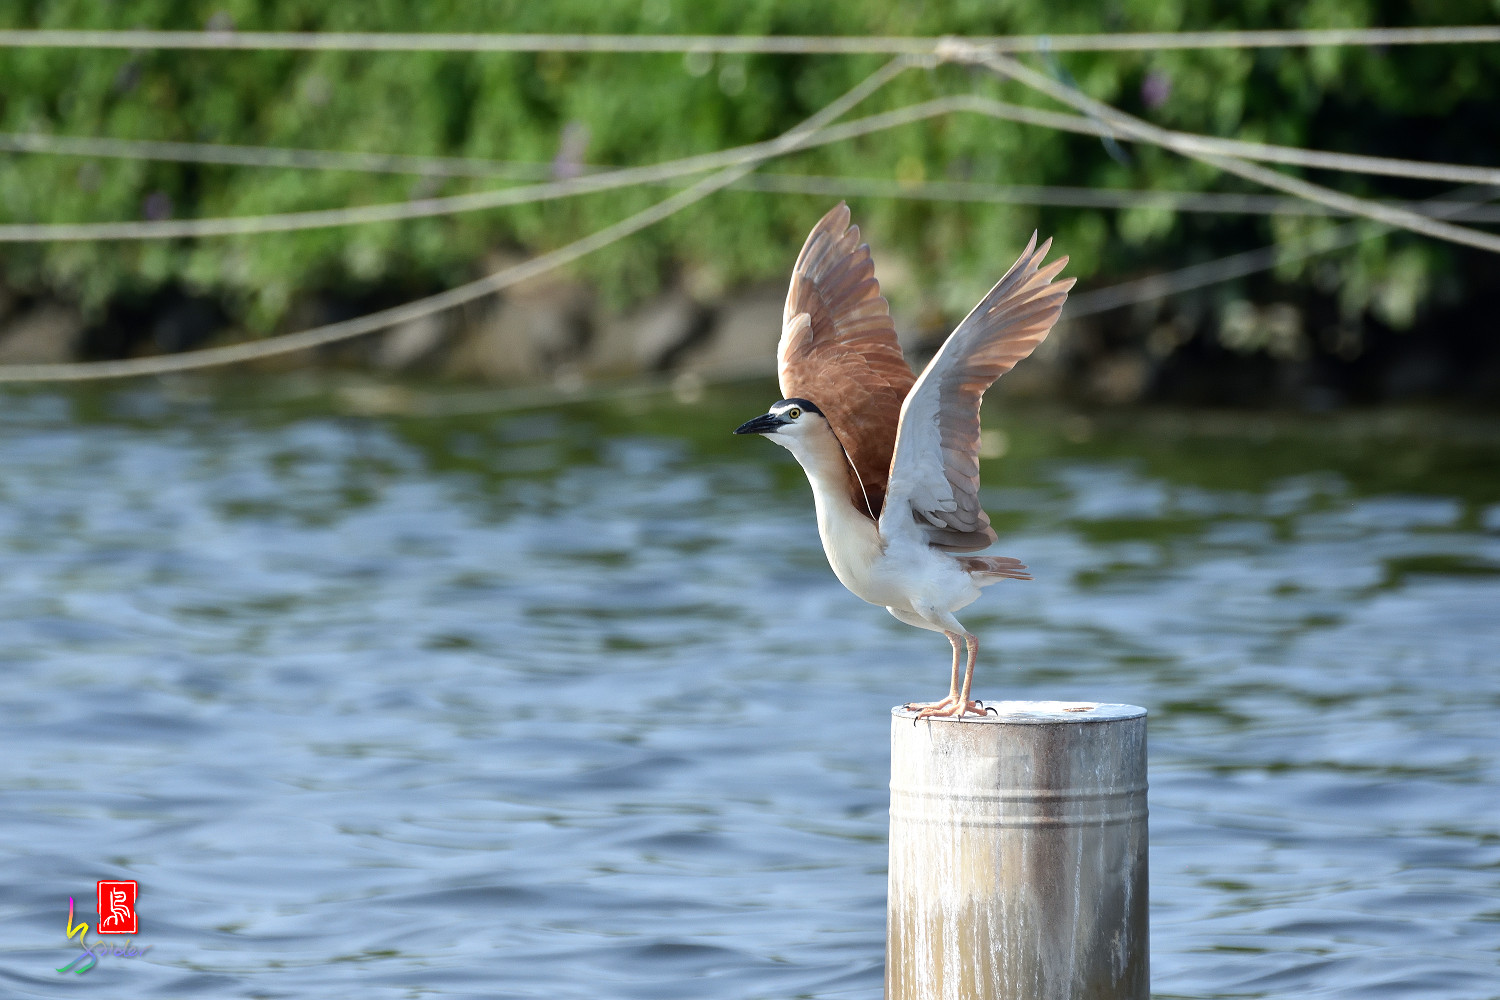 Rufous_Night_Heron_7576